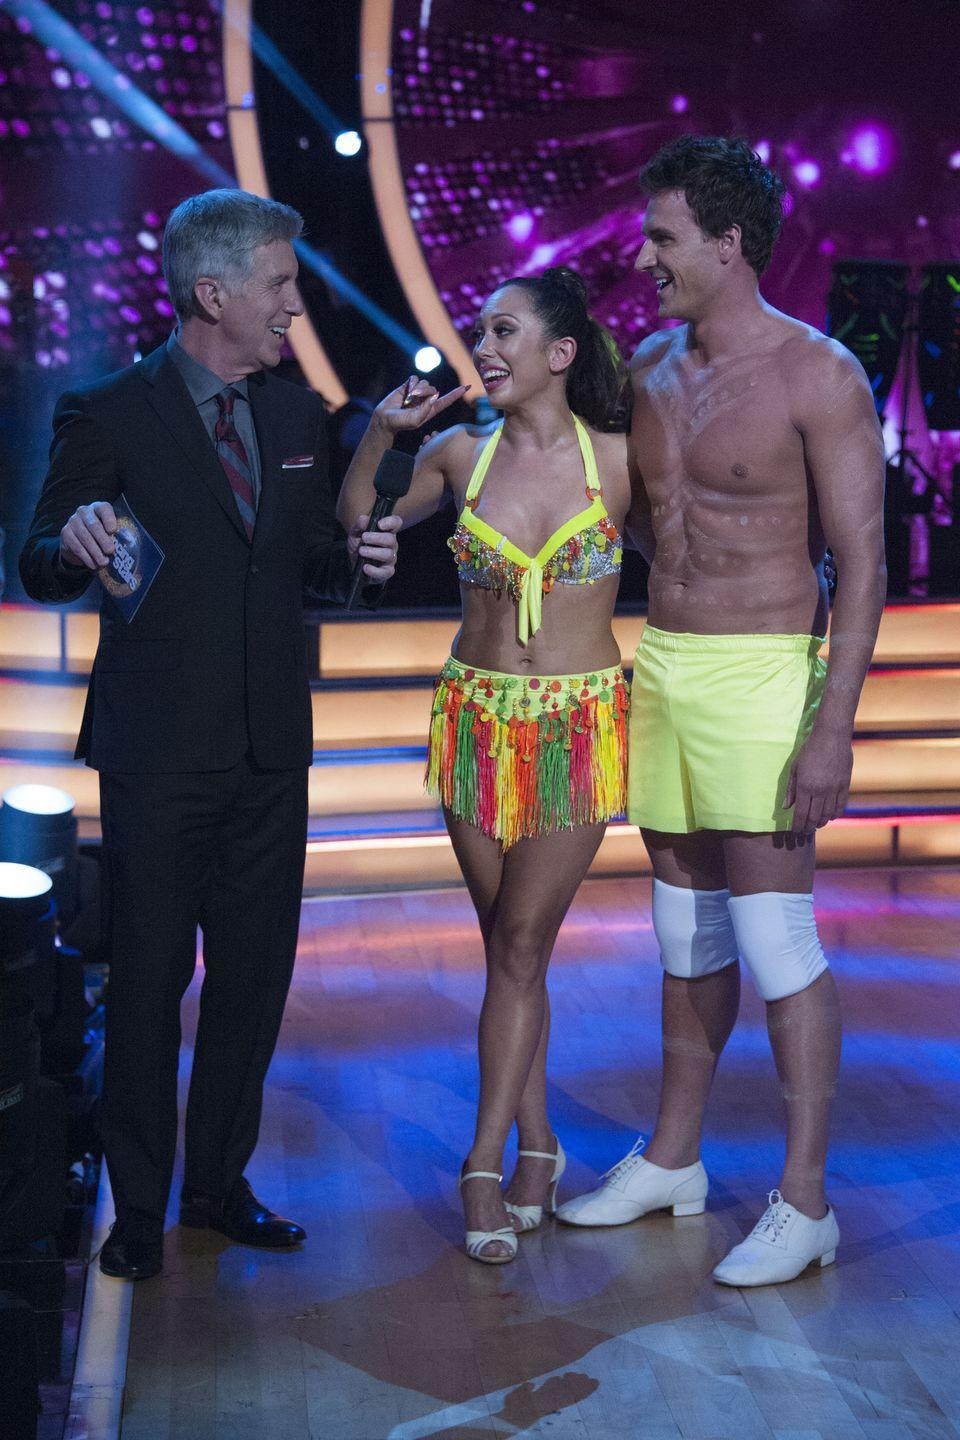 <p>The Olympic swimmer and his partner, Cheryl Burke, went all out for their glow-in-the-dark salsa. Ryan even ripped off his shirt and pants, exposing black-light paint and shorts. The judges loved the commitment, but those shorts were a <em>little </em>short for prime time if you ask me.</p>